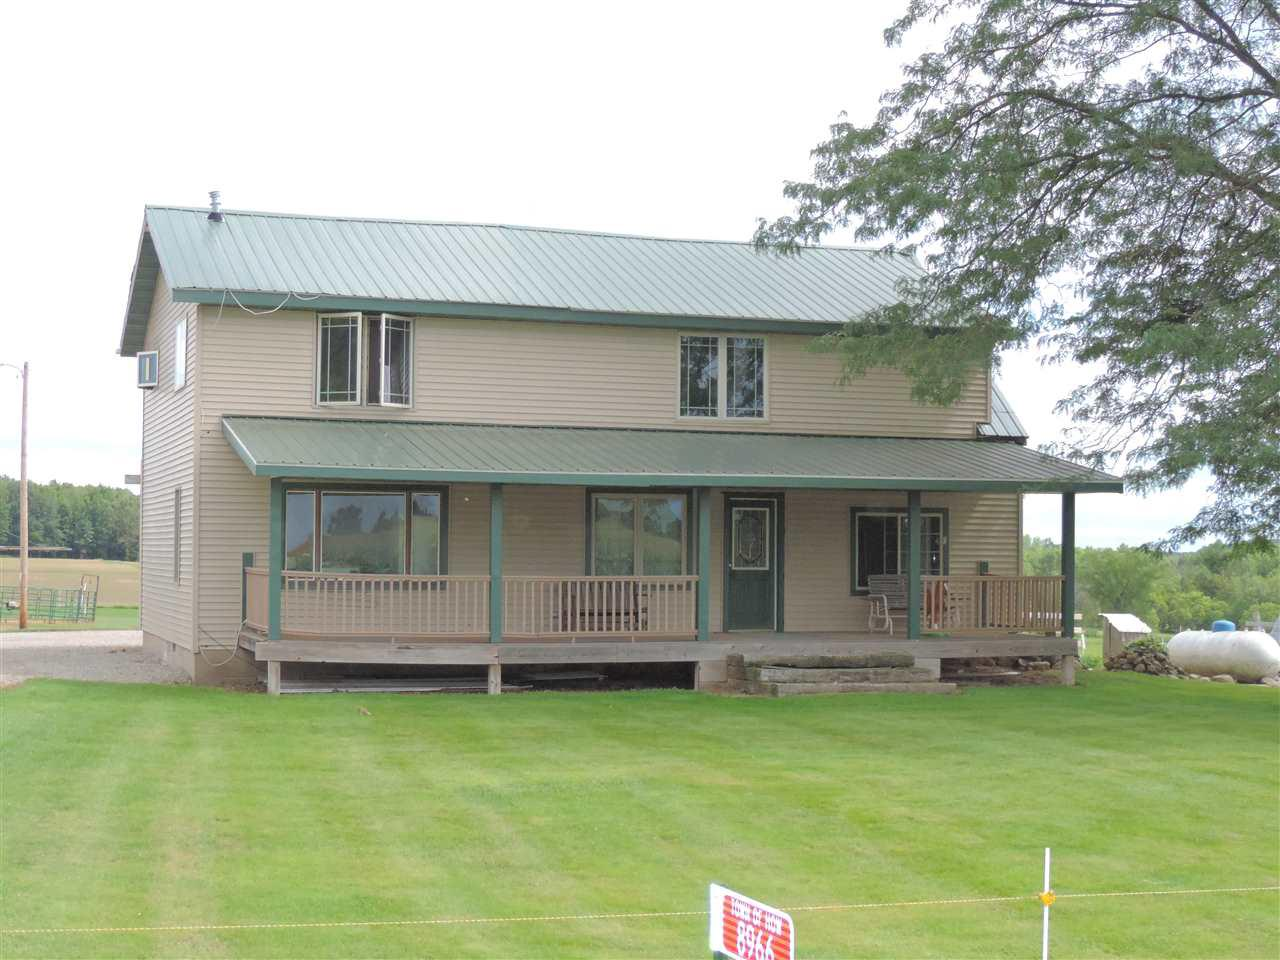 Horse lovers dream, approx 67 acres of land, fenced in pastures, horse barn with indoor arena, newer 40x60 work shop with 3 overhead doors, outdoor riding area, approx 40 acres of agricultural land. Lower level of home is currently gutted and can be finished to make it your own.